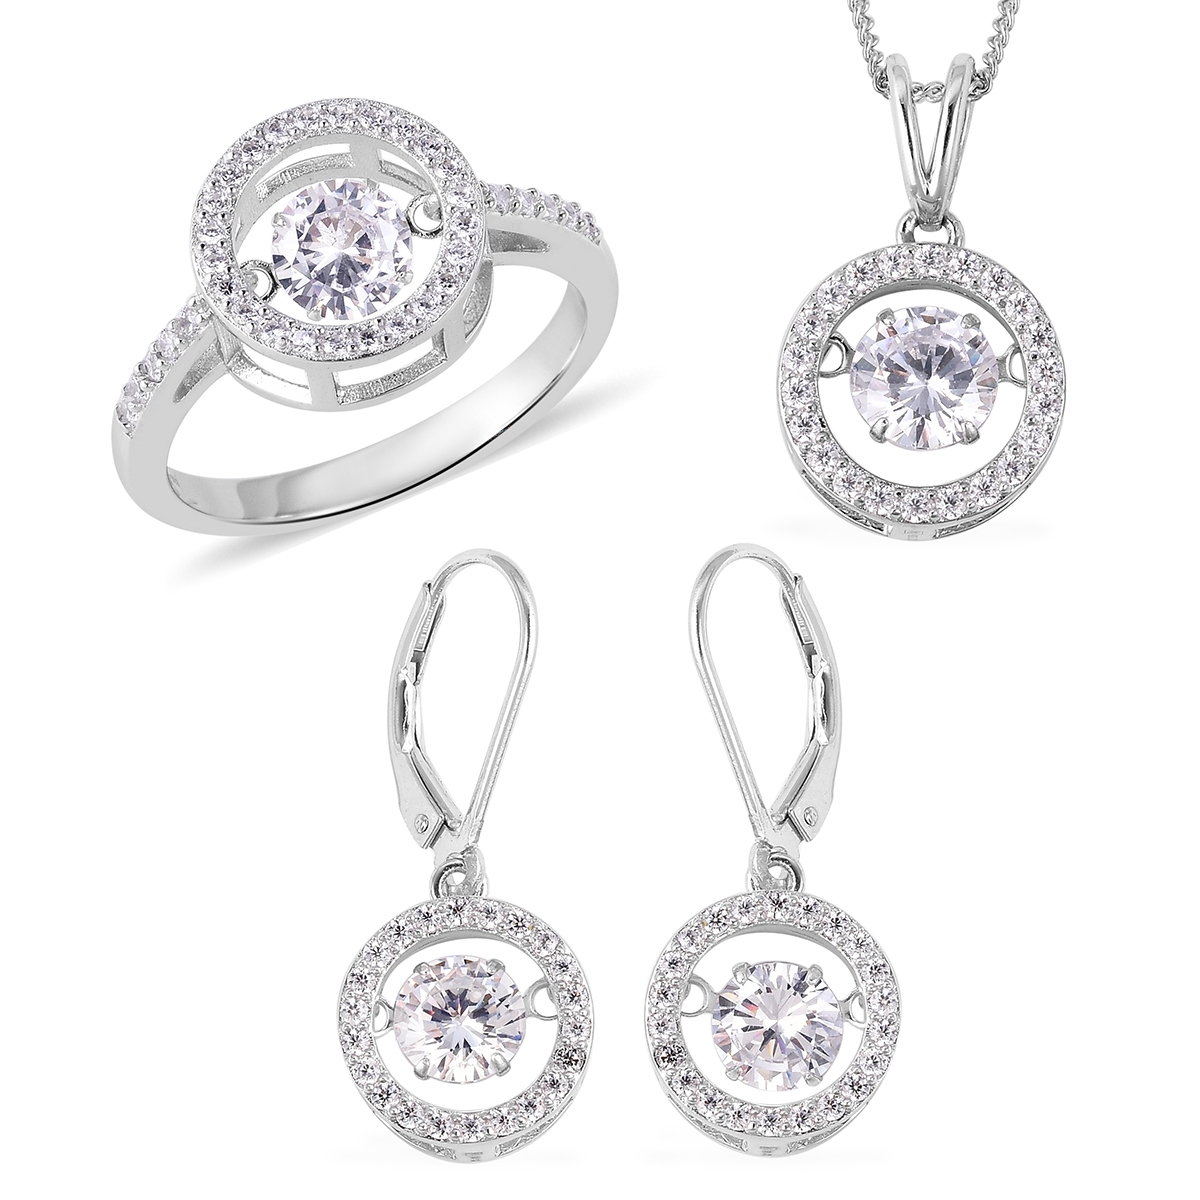 Lustro Stella Dancing Cz Halo Set Earrings, Ring (Size 6) And Pendant Necklace (18 In) In Sterling Silver (View 23 of 25)